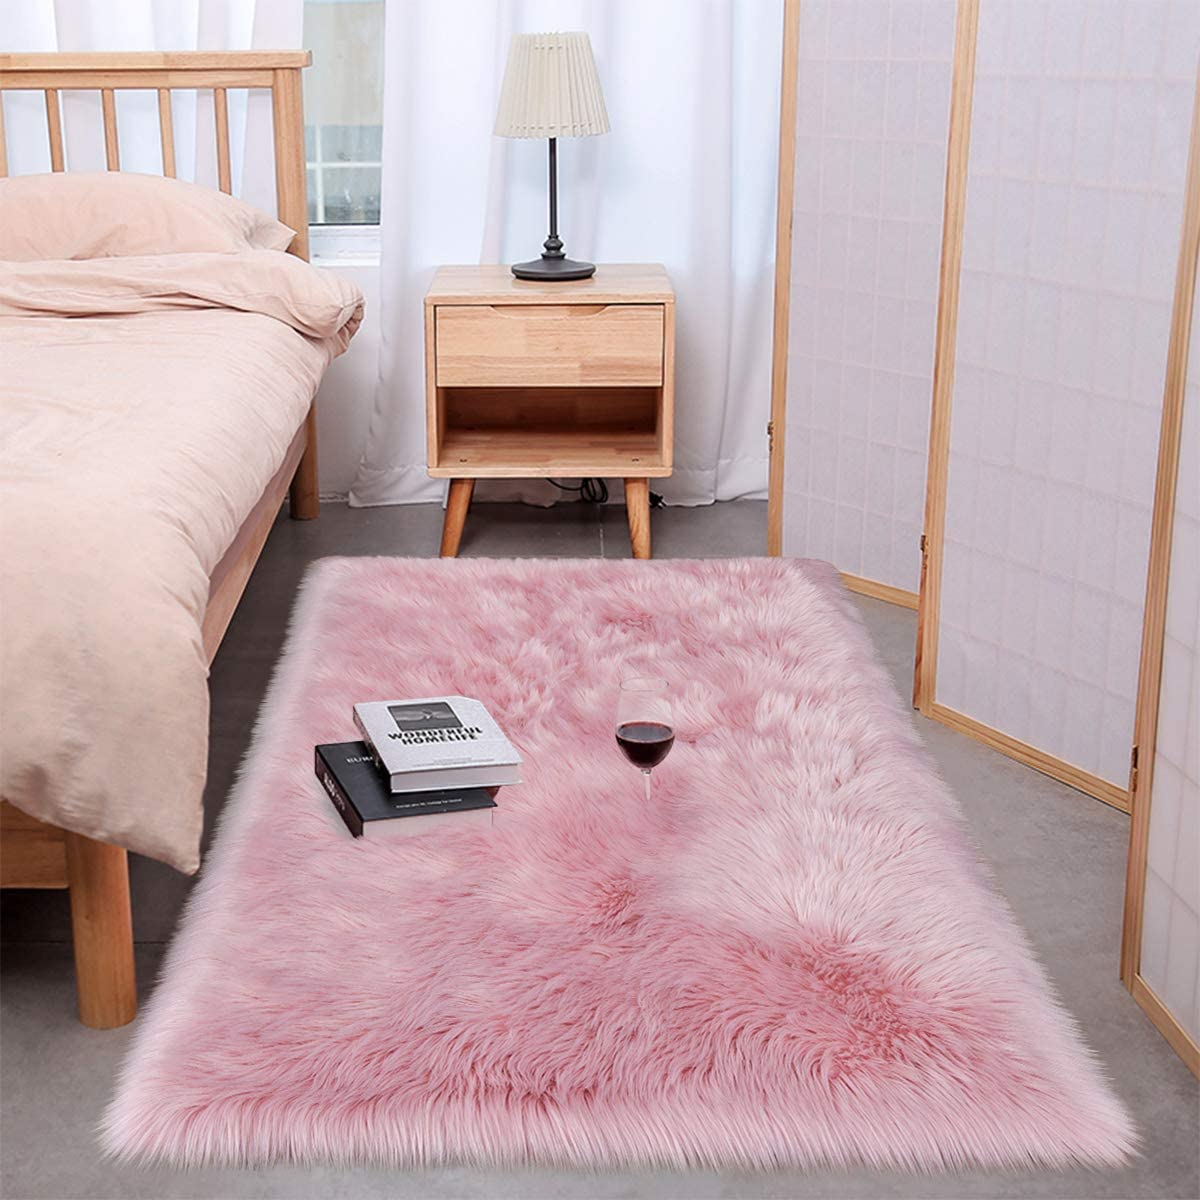 Wondo Soft Shag Faux Fur Sheepskin Area Rugs for Bedroom Home Decor Floor Sofa Couch Fluffy Carpet Chair Cover Cushion 3ft x 5ft,Pink